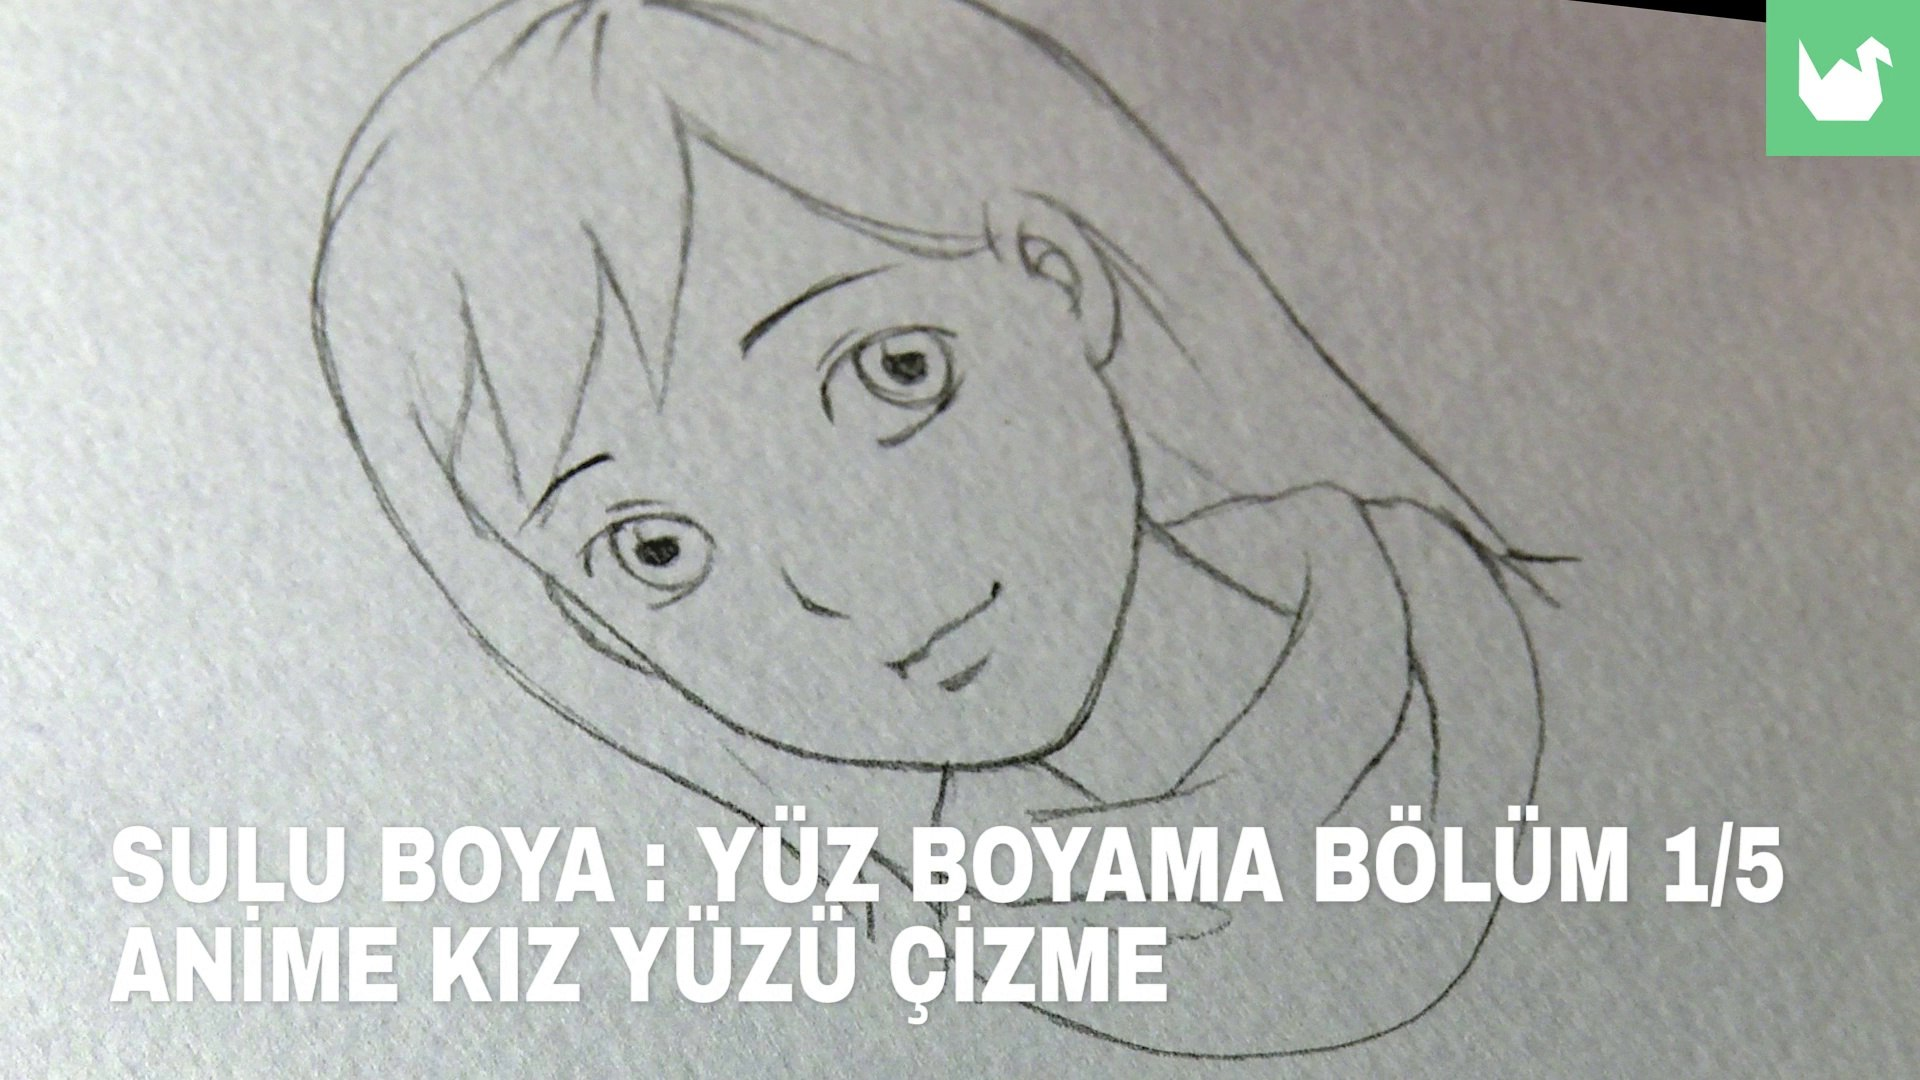 Sulu Boya Yuz Boyama 1 5 Anime Kiz Yuzu Cizme Video Dailymotion